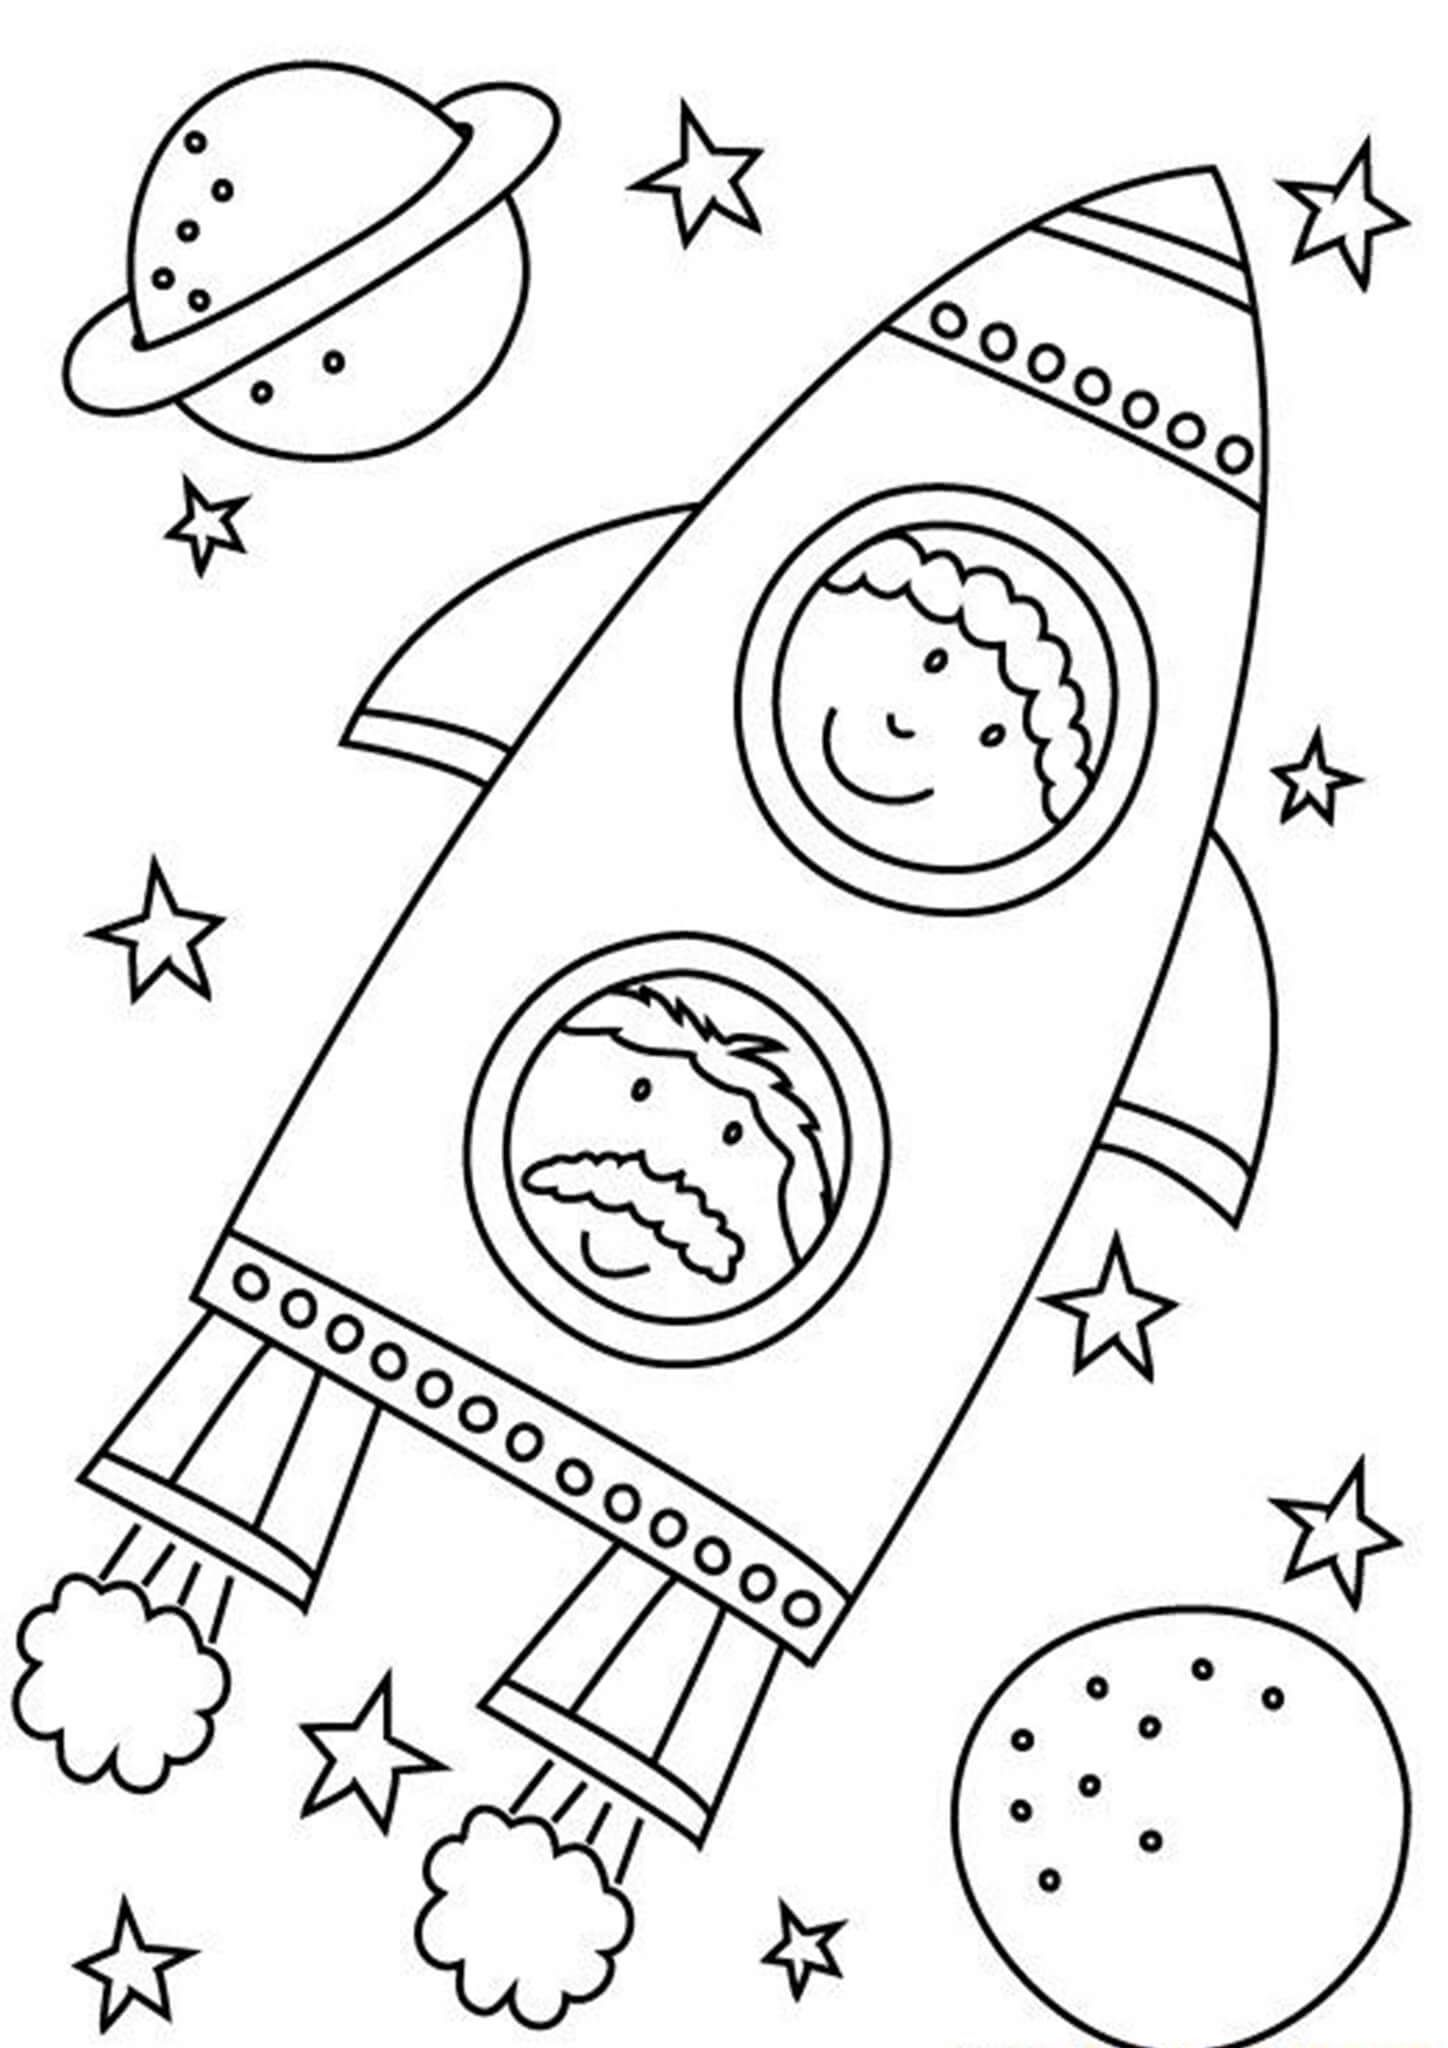 Free & Easy To Print Space Coloring Pages  Space coloring pages